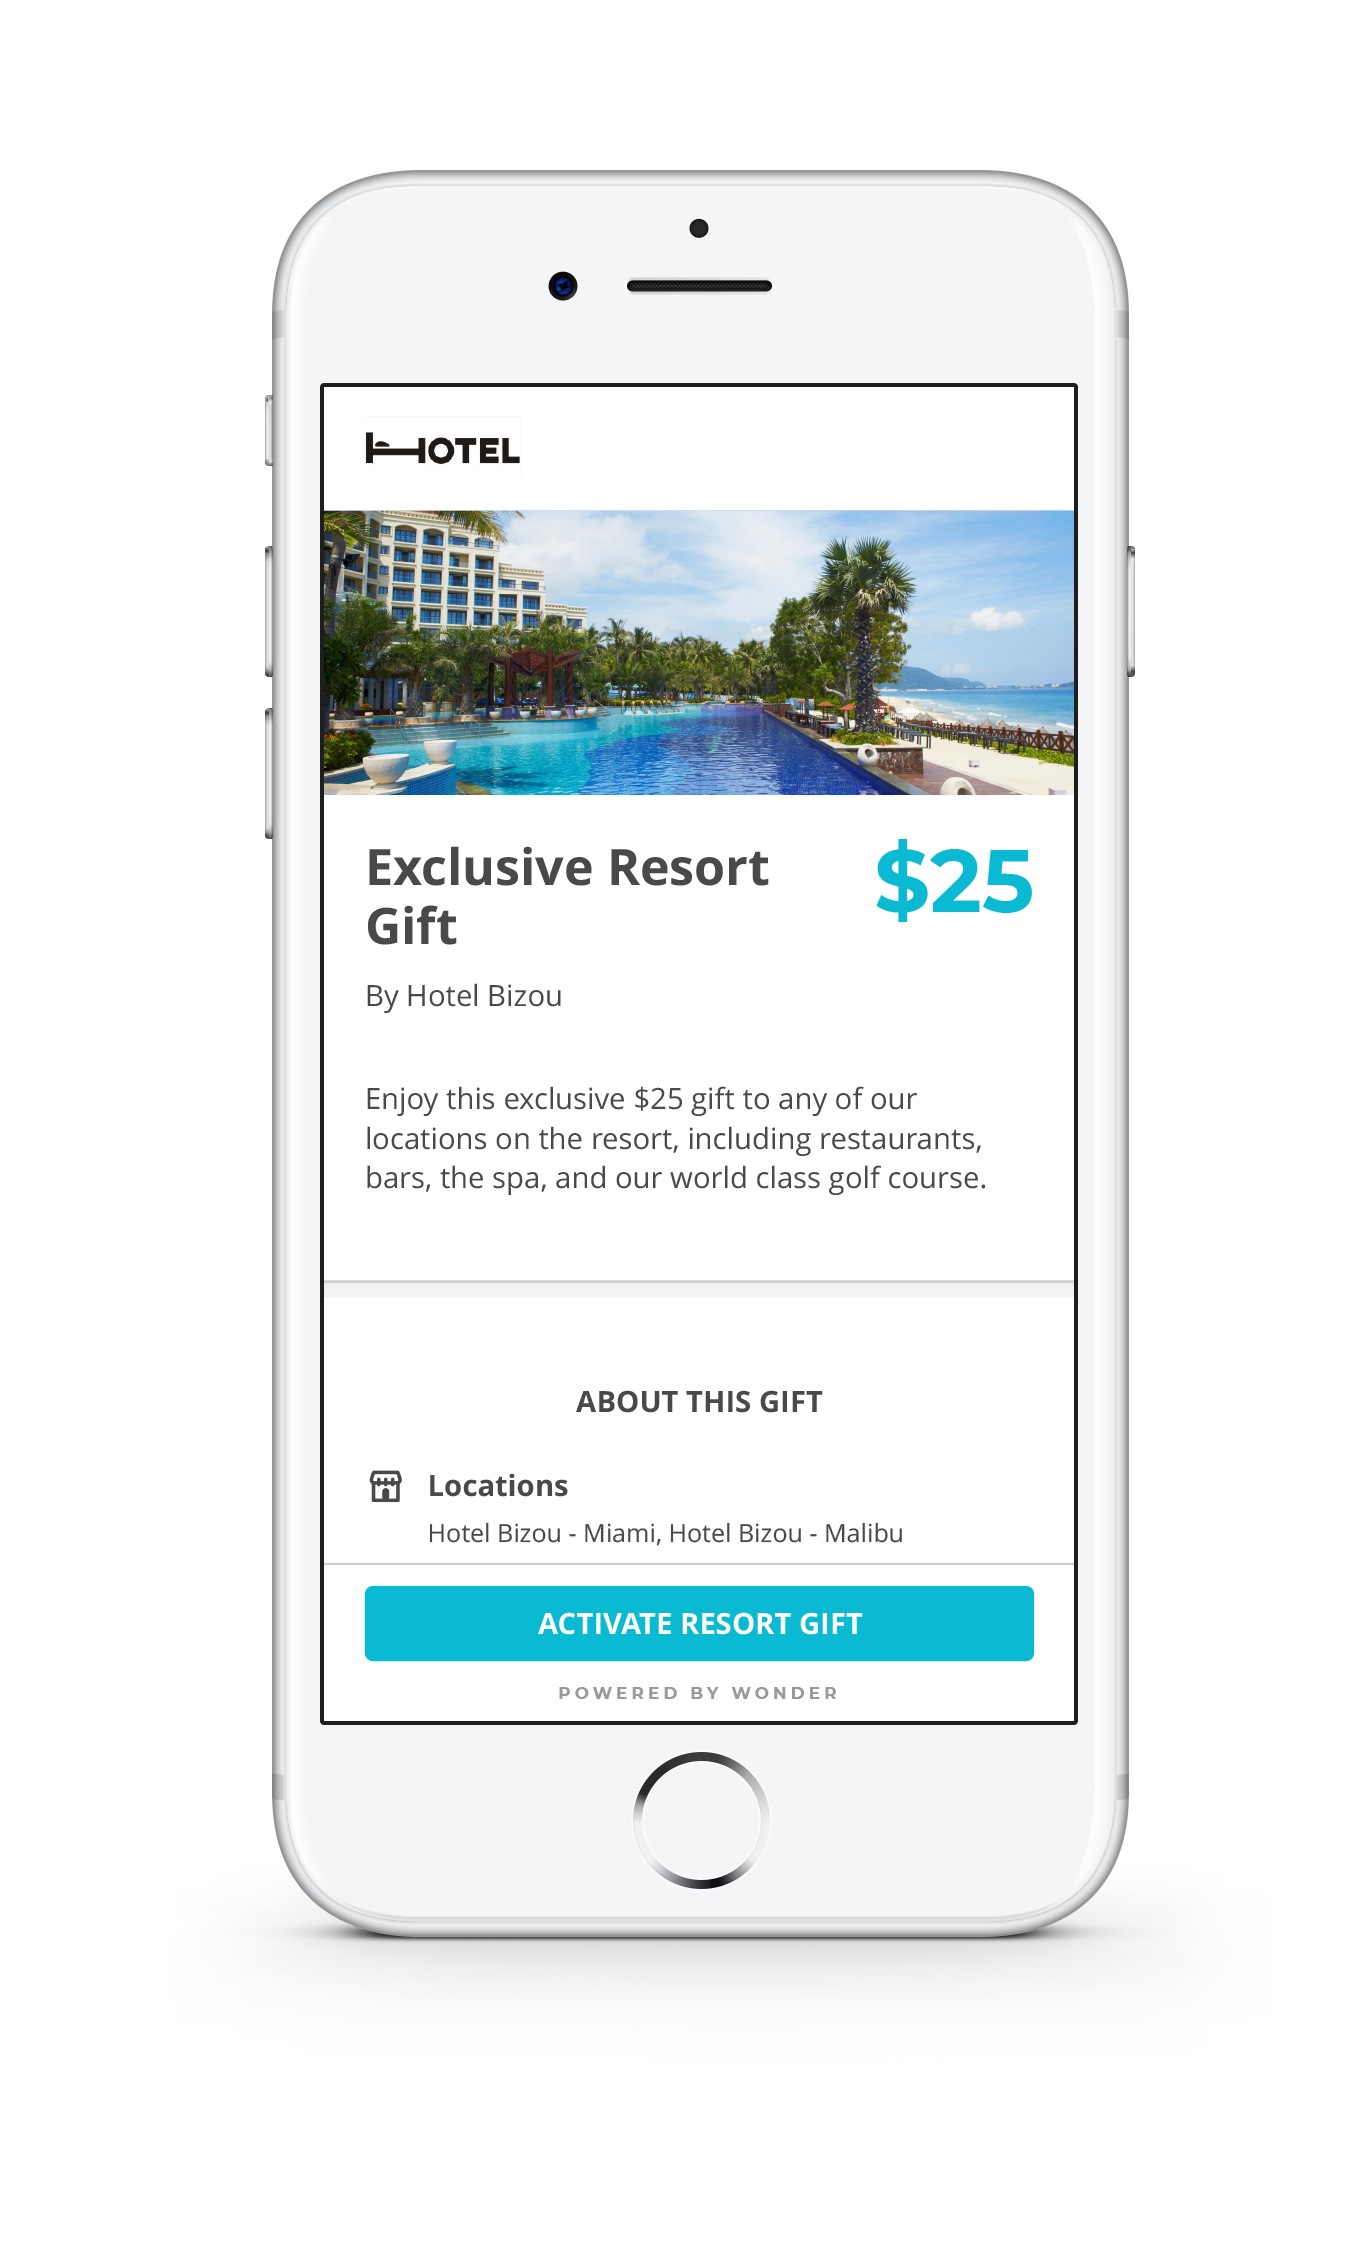 Direct Booking Incentives